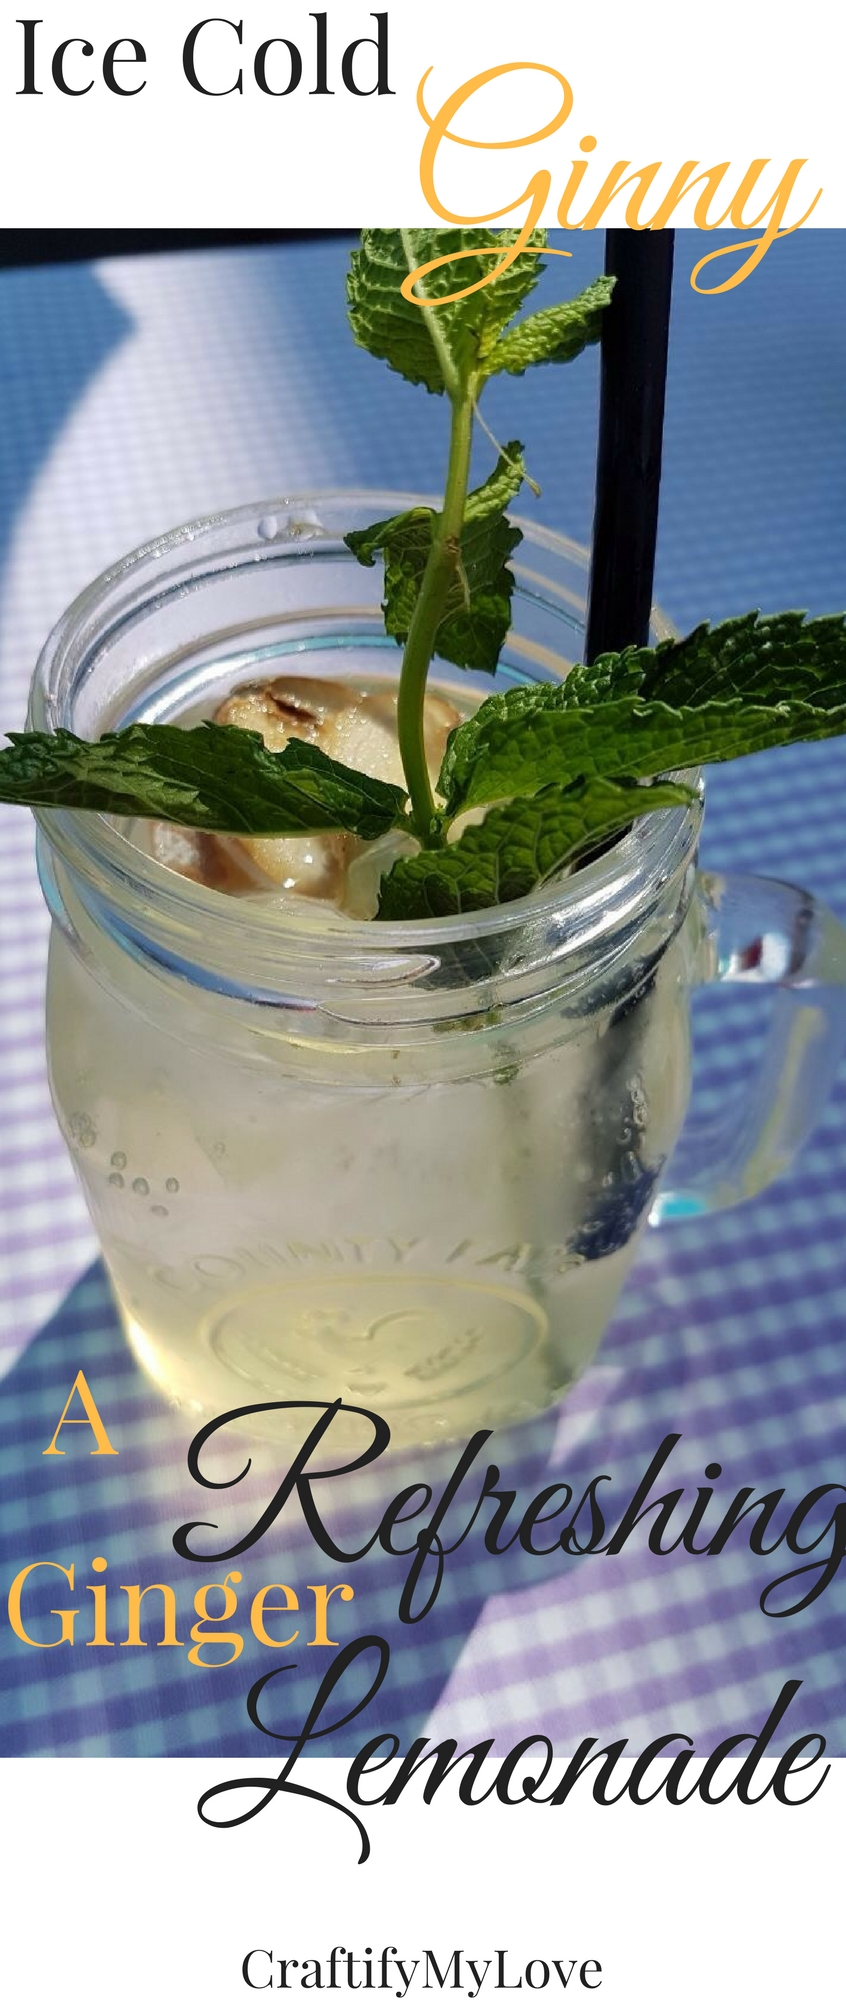 Refreshing summer drink, ice cold ginger lemonade made from ginger sirup